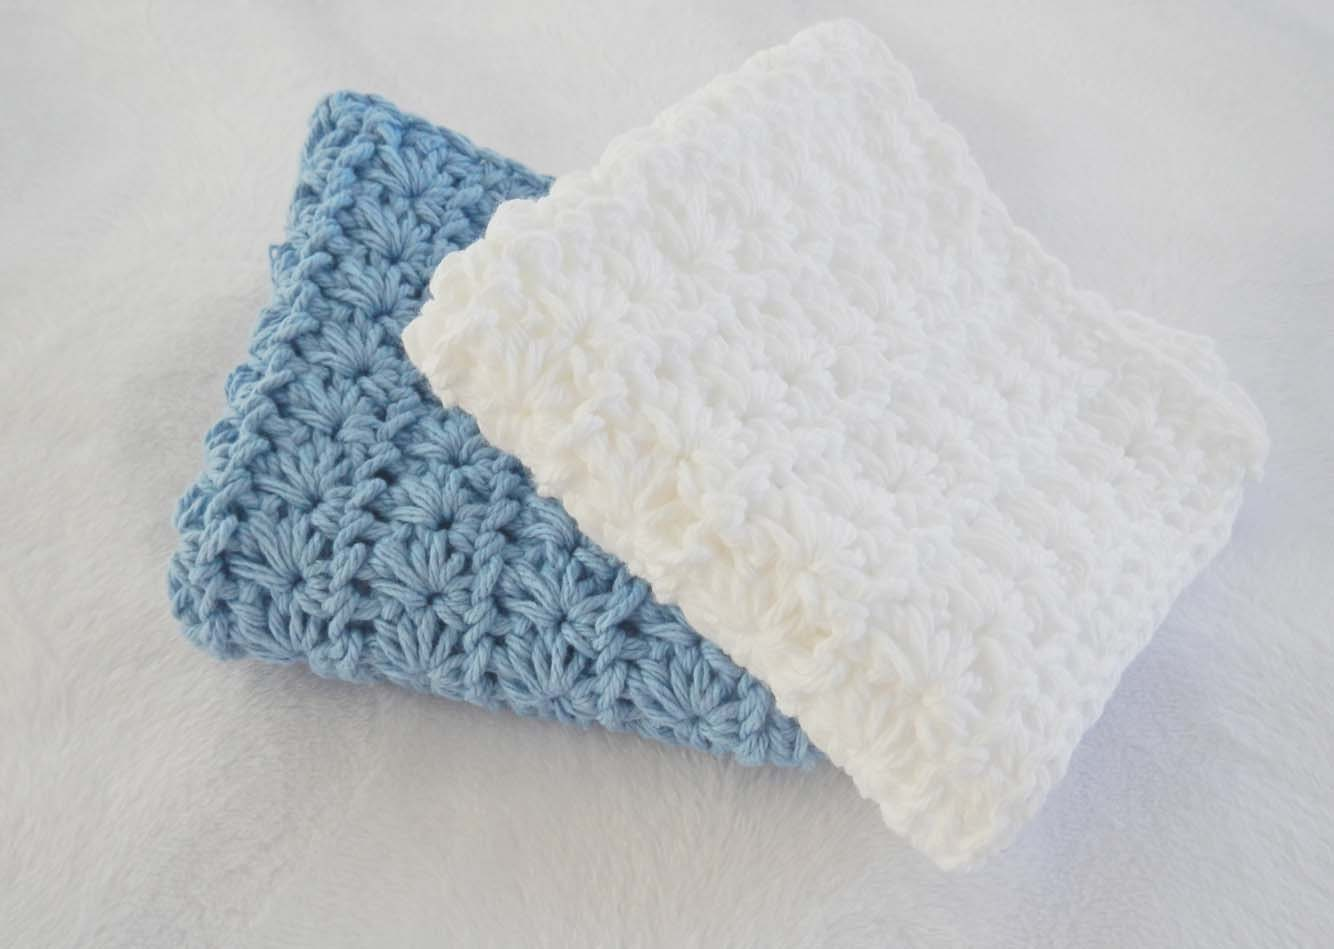 Crochet Washcloth or Dish Cloth for Bathroom or Kitchen - Cotton Cloth - Large - White and Blue - HerterCrochetDesigns